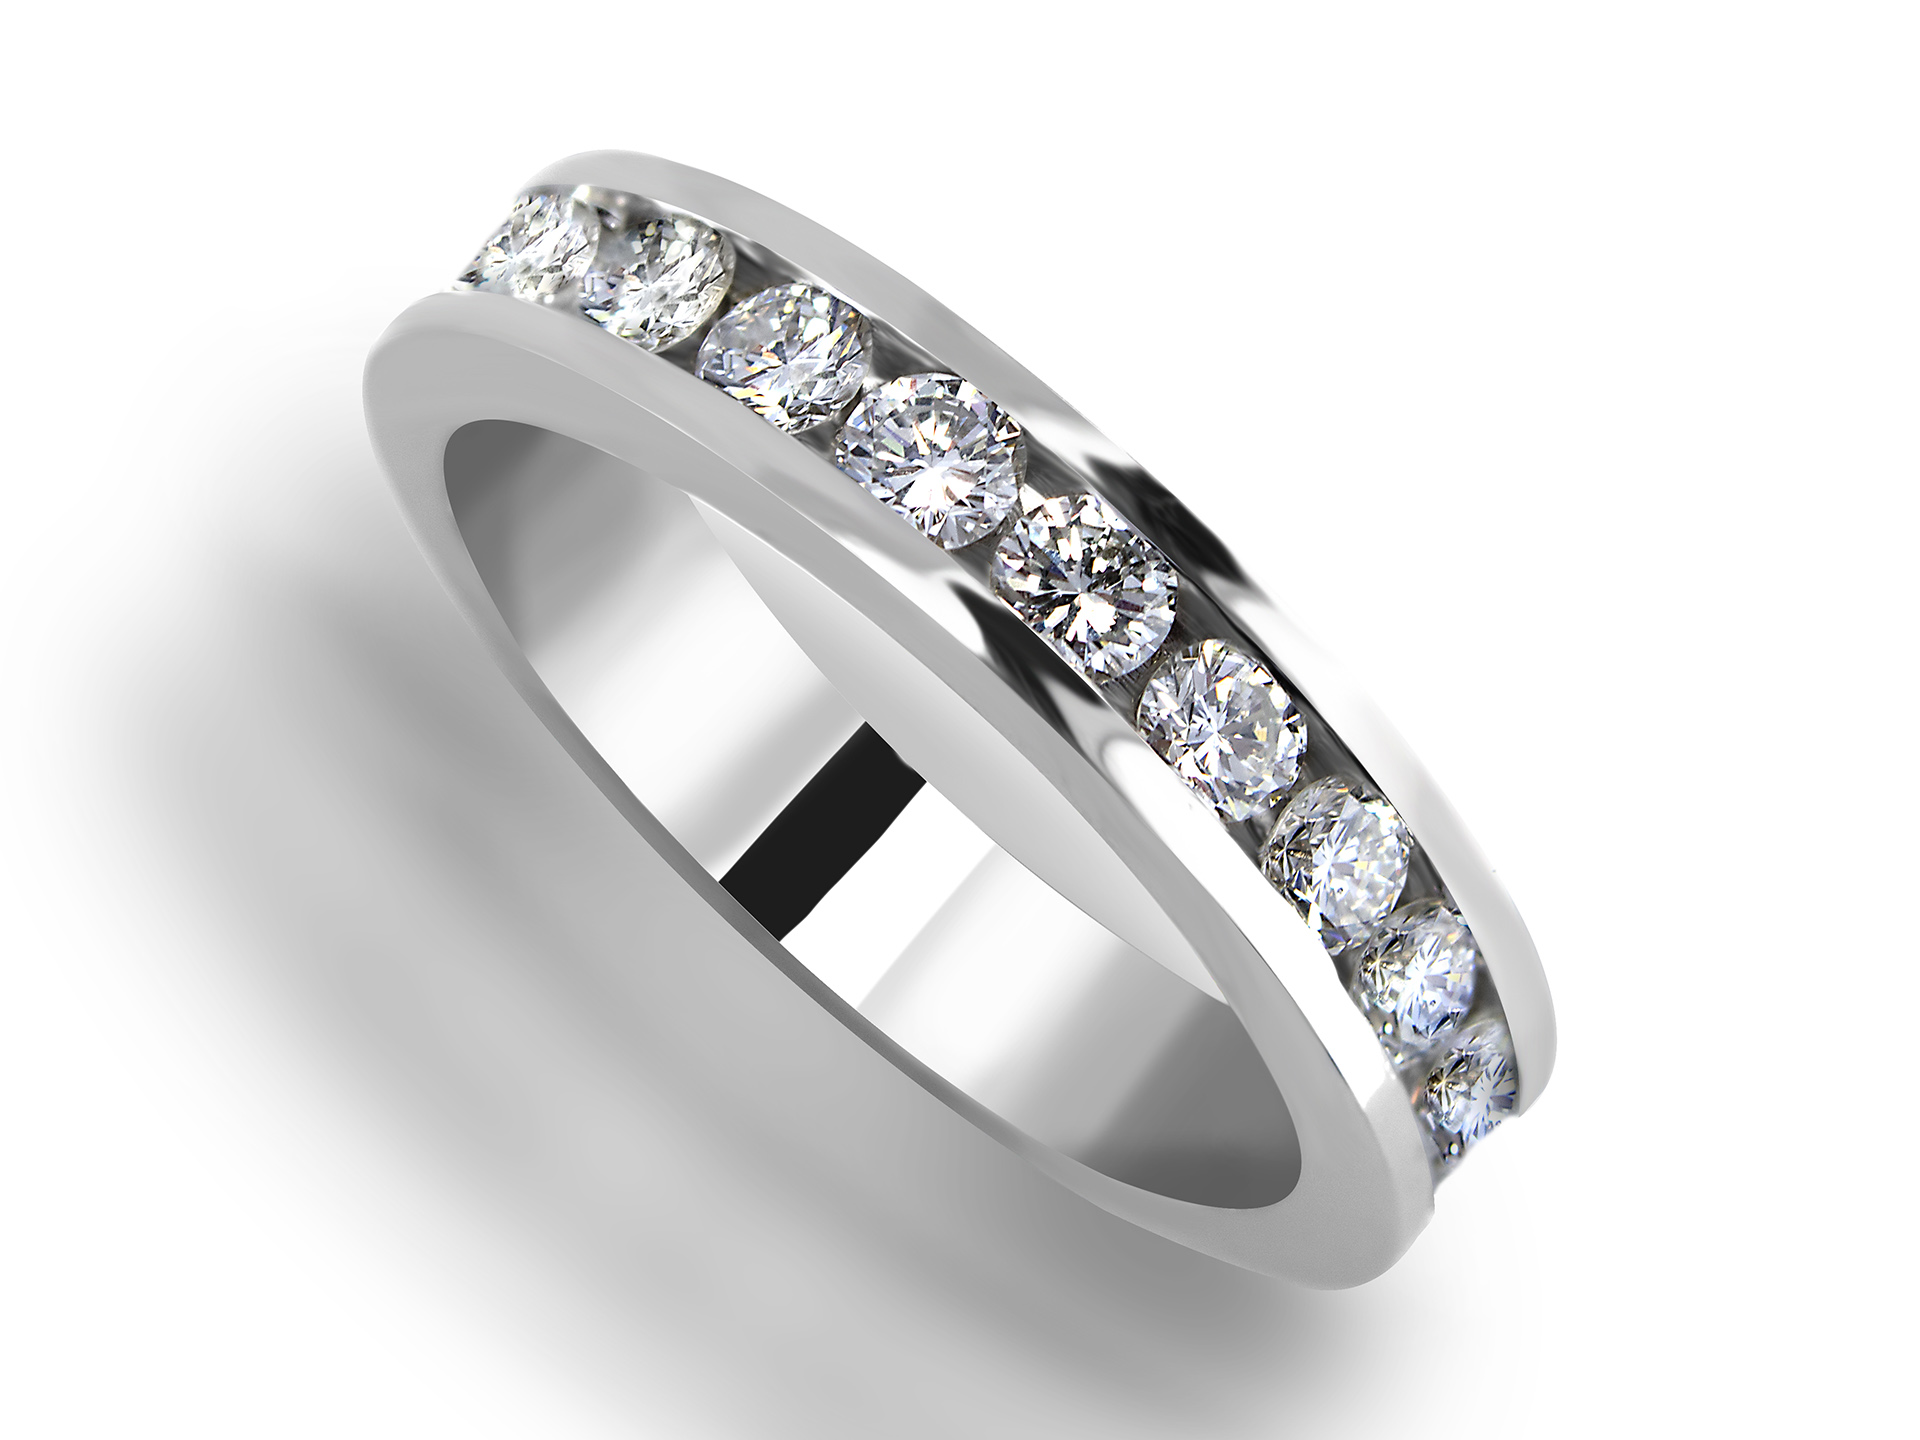 channel het eternity product ring diamond wedding set